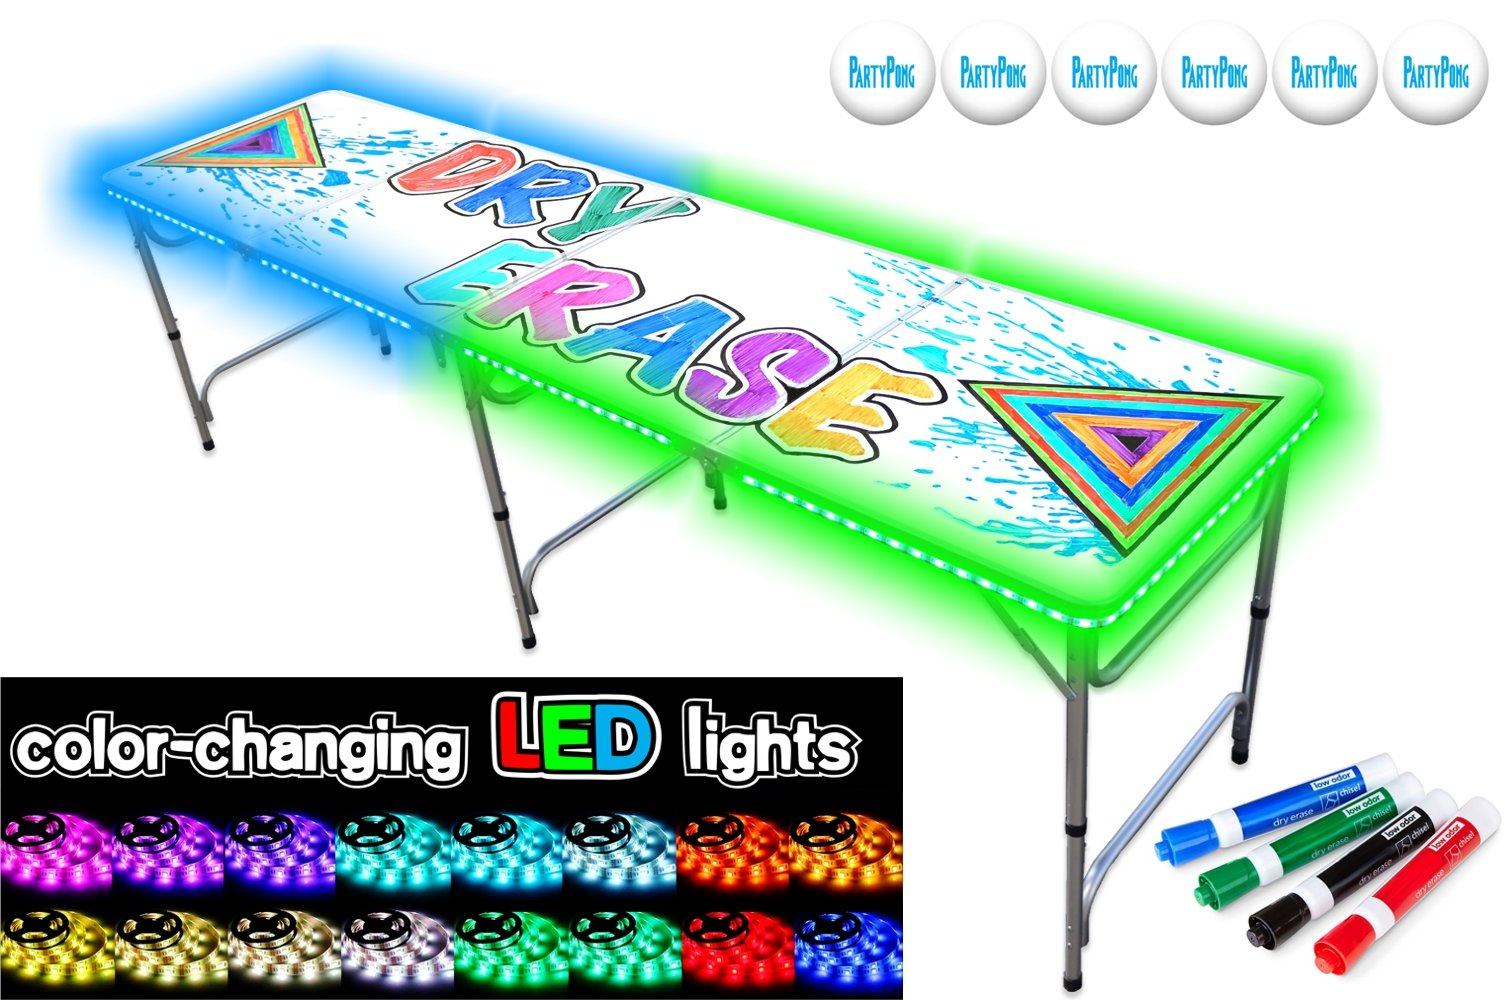 PartyPongTables 8-Foot Beer Pong Table with LED Glow Lights & Dry Erase Surface by PartyPongTables